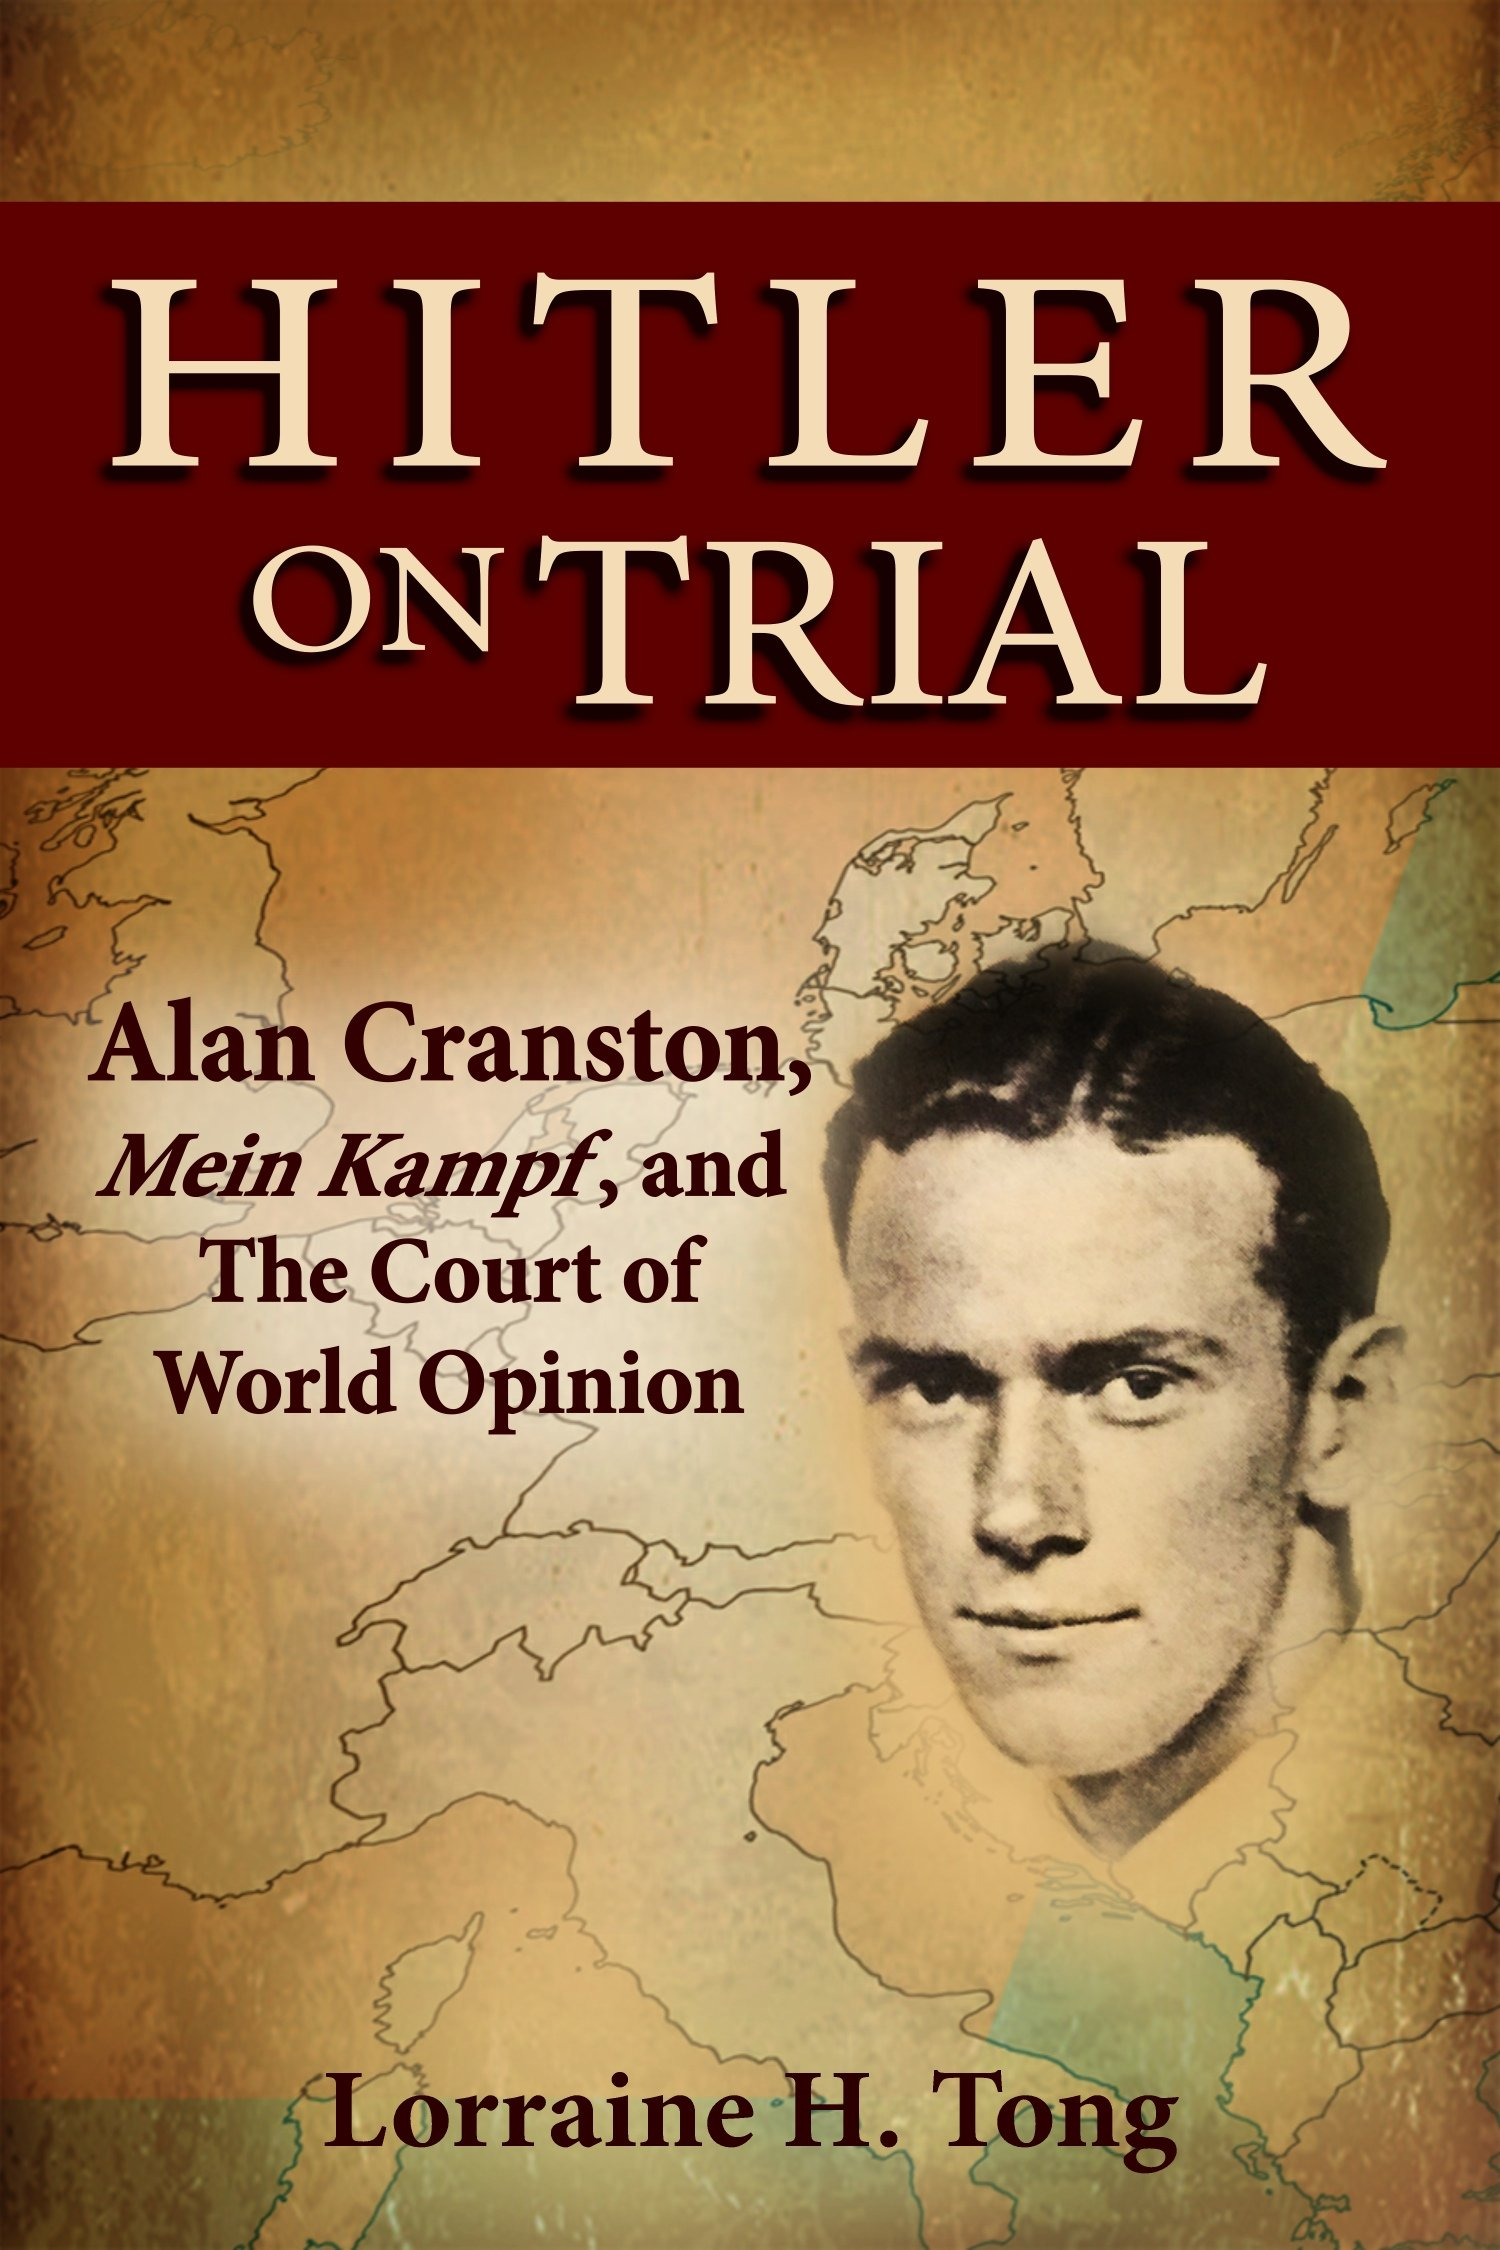 Image OfHitler On Trial: Alan Cranston, Mein Kampf, And The Court Of World Opinion